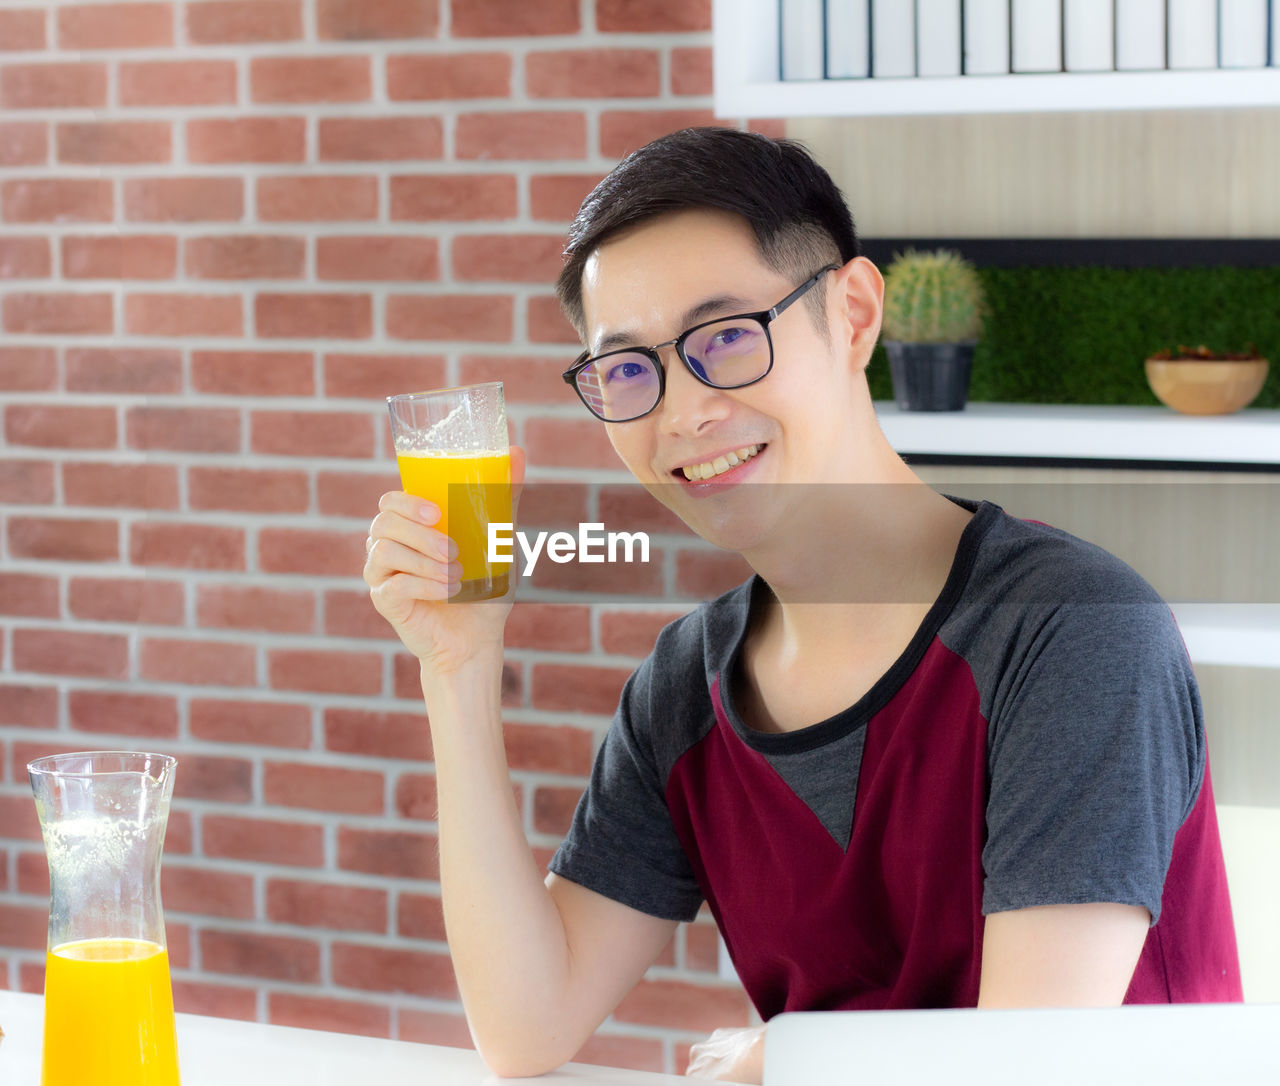 PORTRAIT OF A SMILING YOUNG MAN DRINKING GLASSES